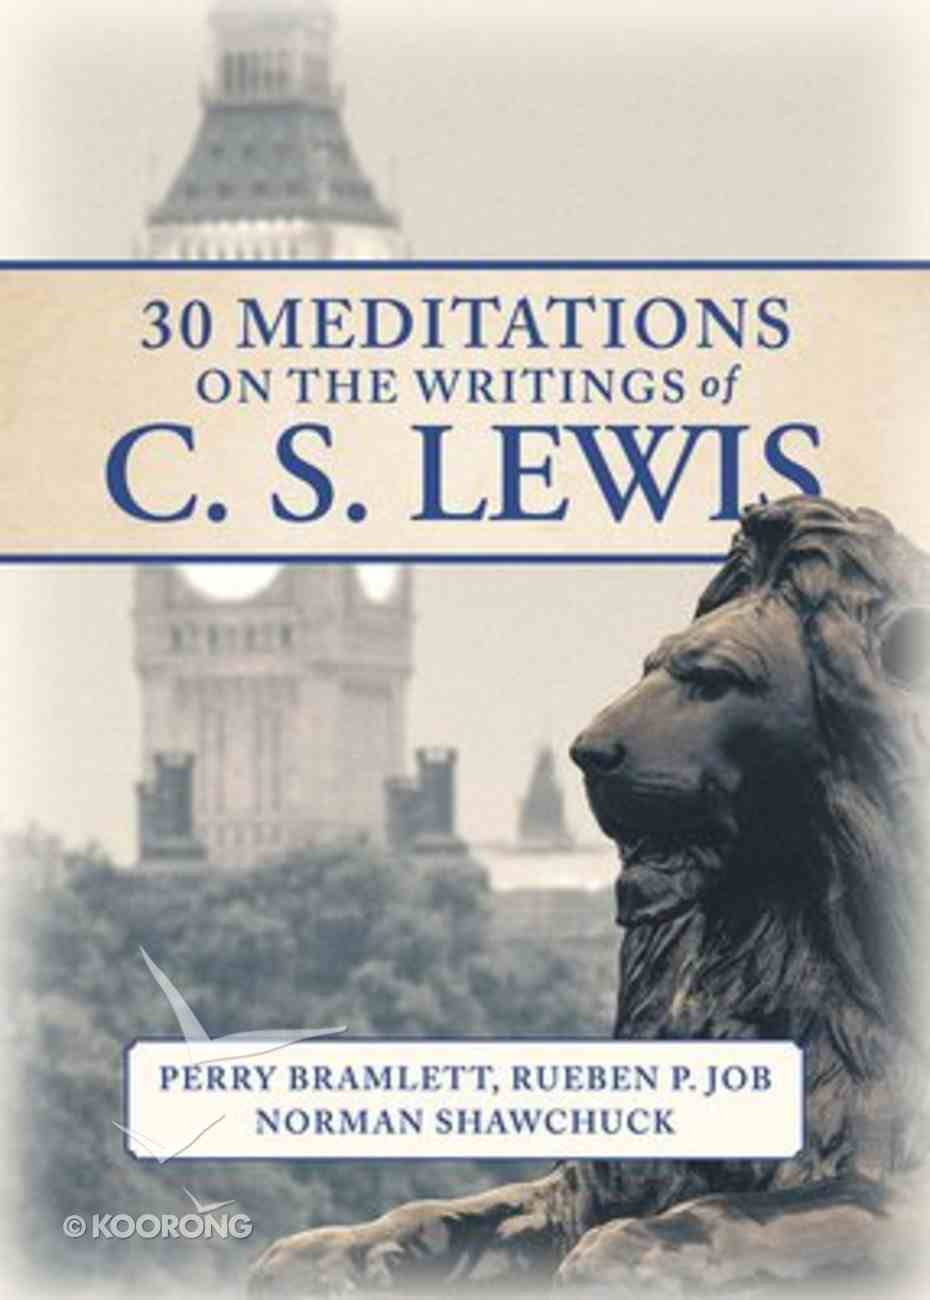 Mornings With C.S. Lewis: 30 Reflections on the Christian Life Paperback